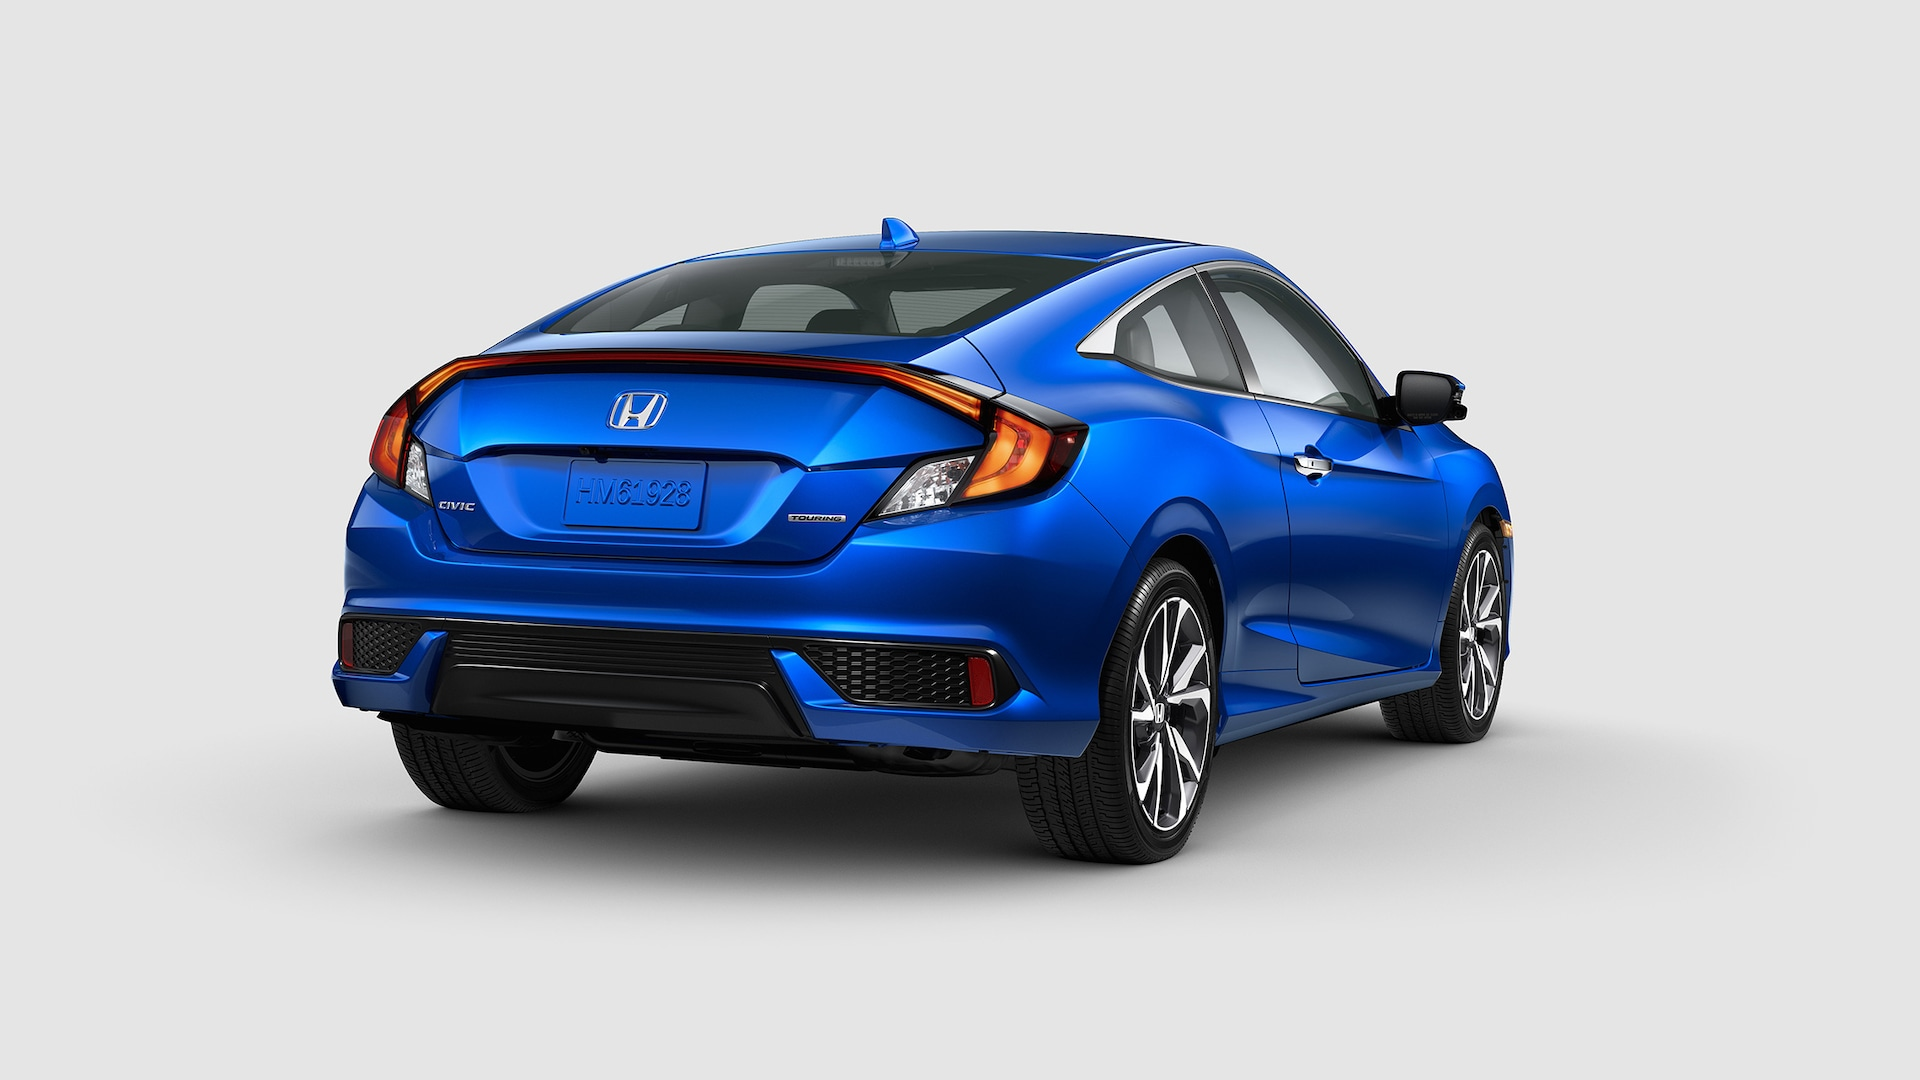 Rear passenger-side view of the the 2020 Honda Civic Touring Coupe in Aegean Blue Metallic displaying taillights with LED light bars.